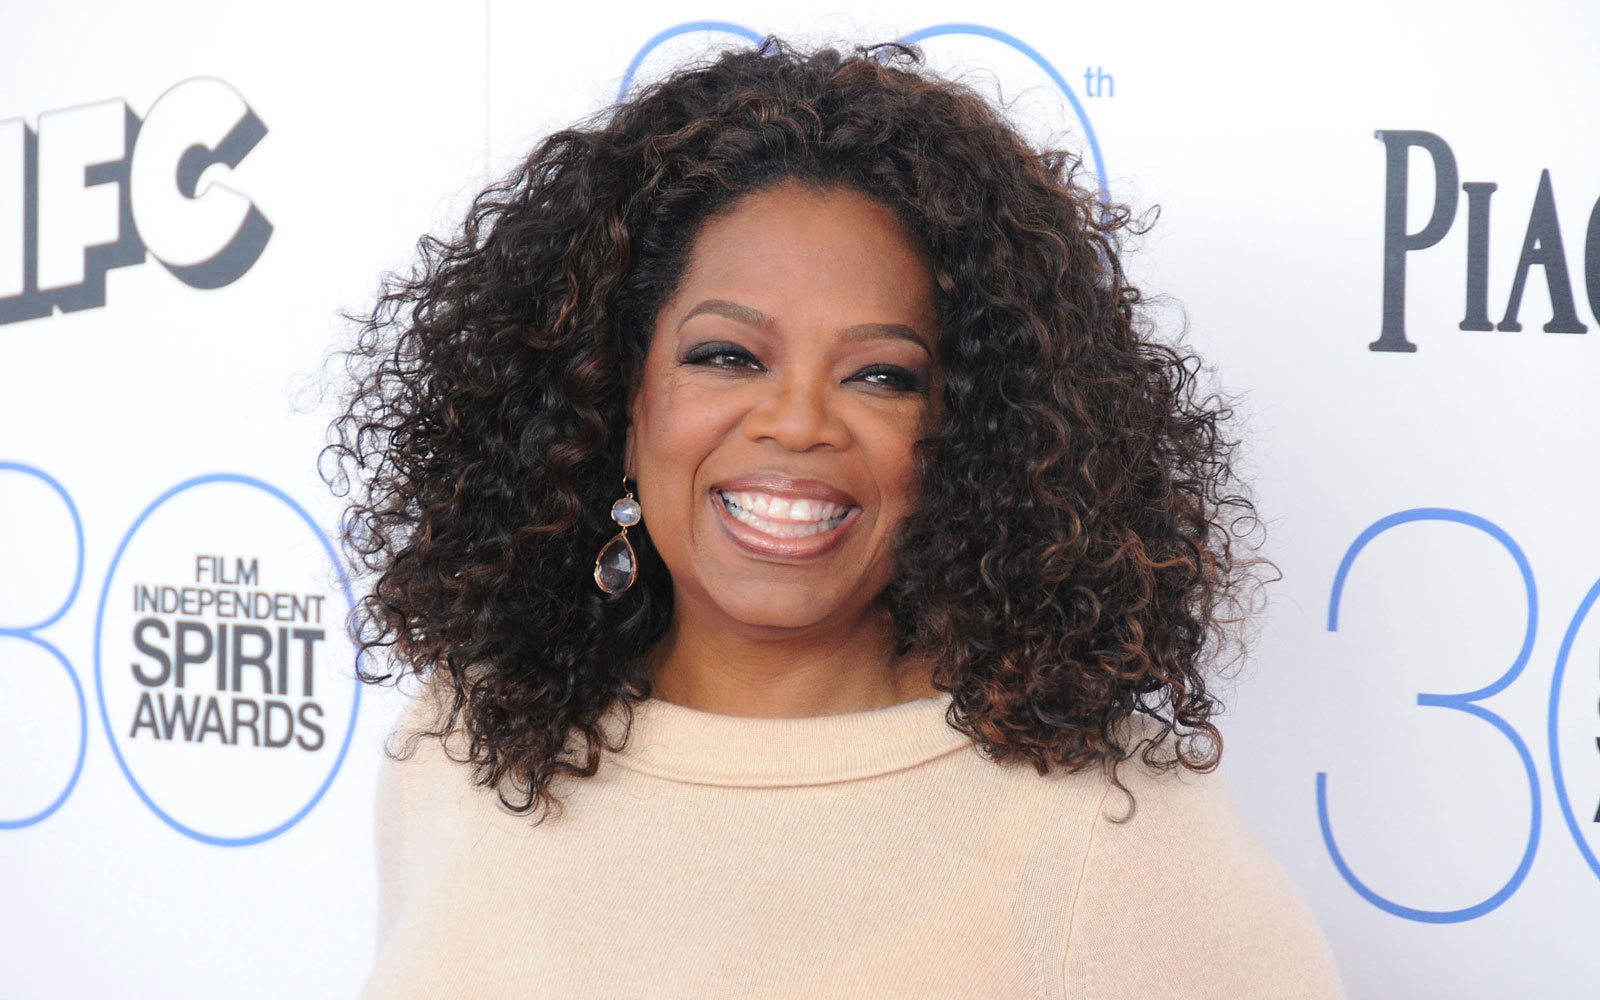 Holland America Teams Up with Oprah Winfrey